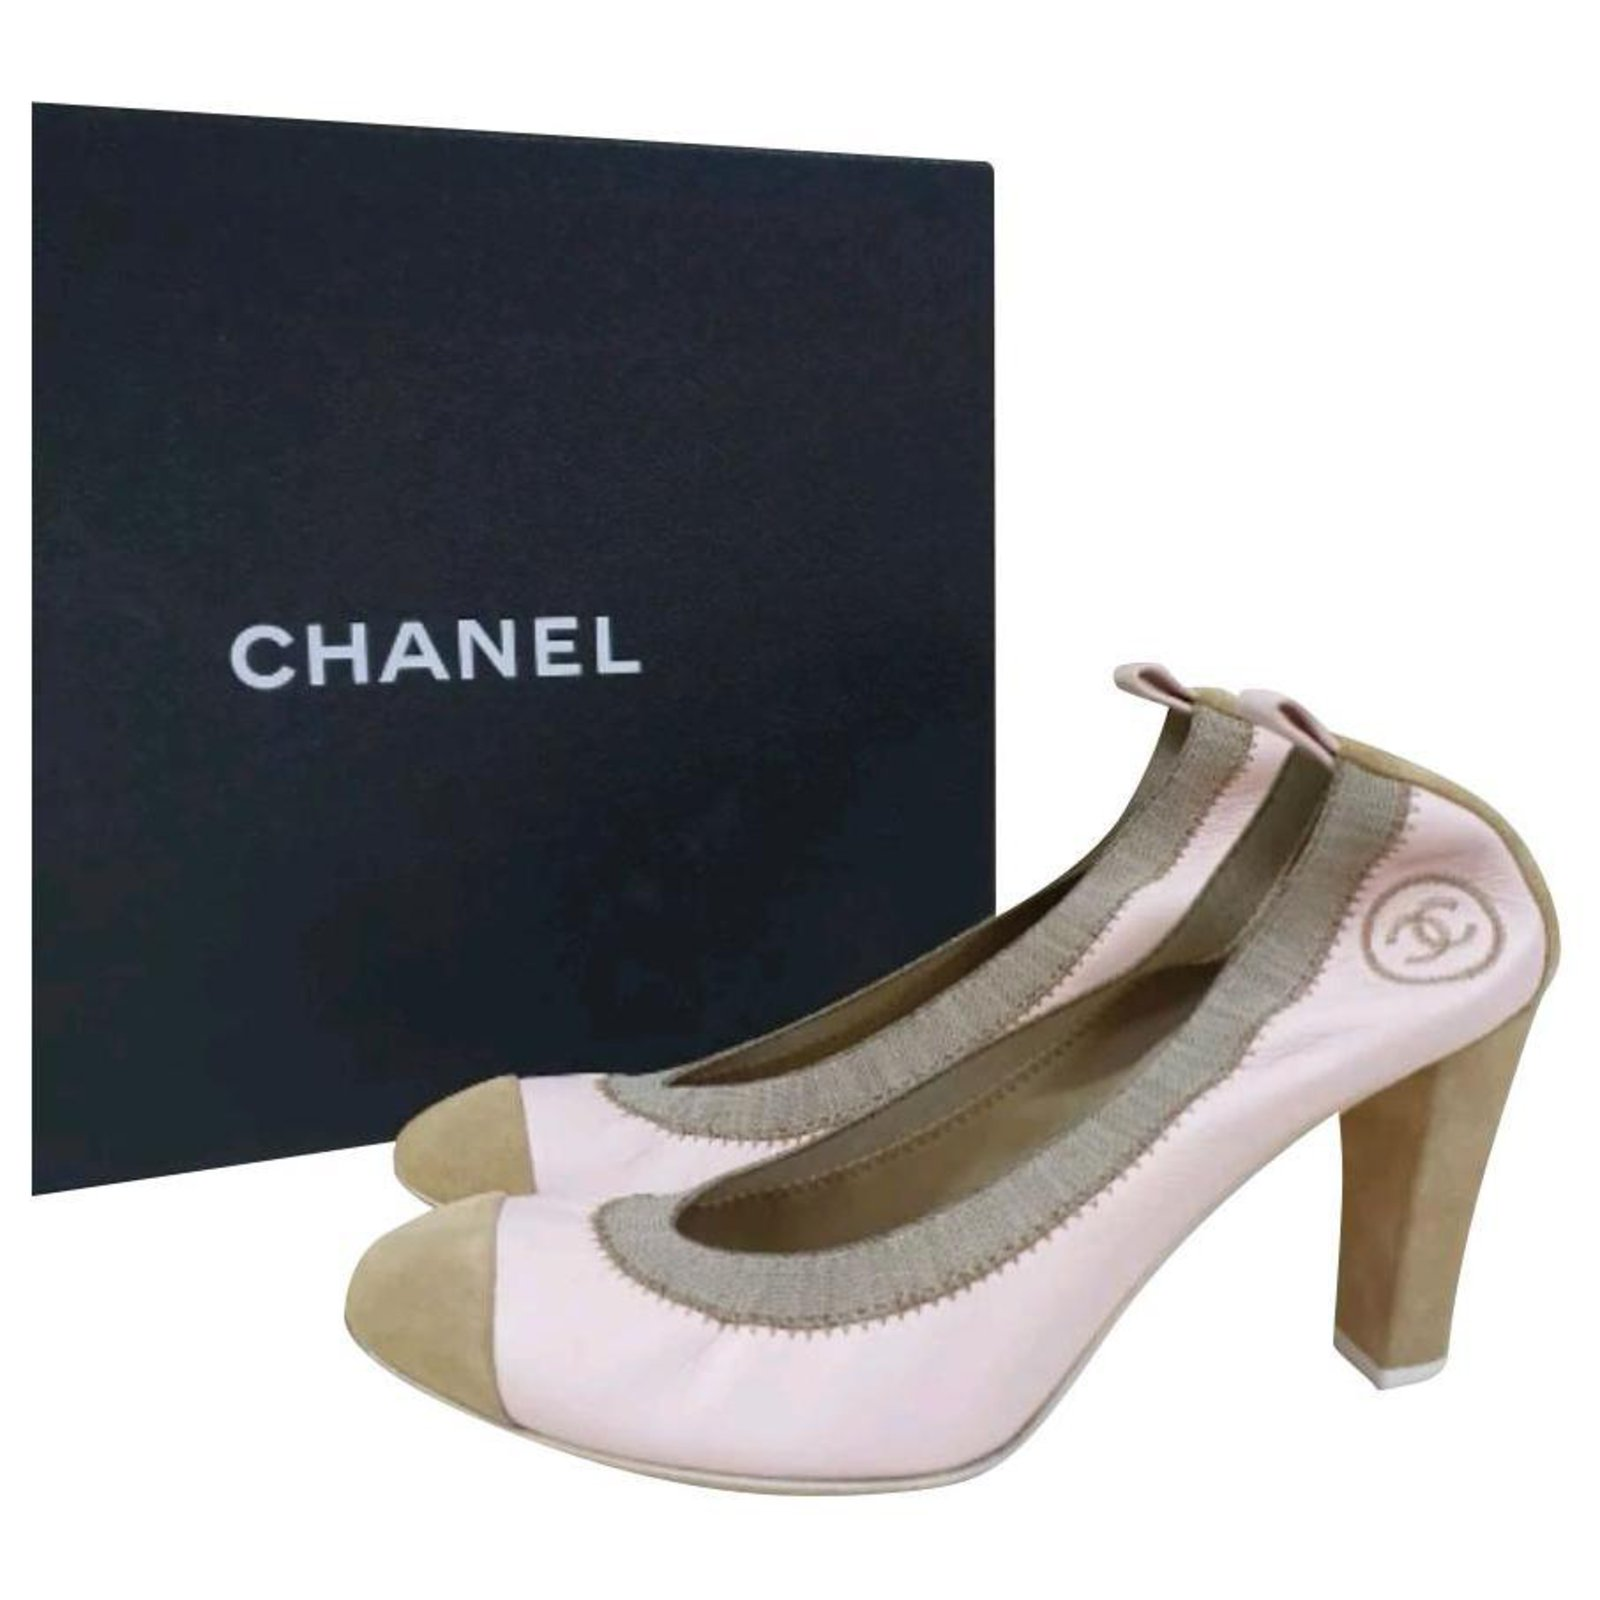 Chanel Chanel Beige Suede Leather Pumps